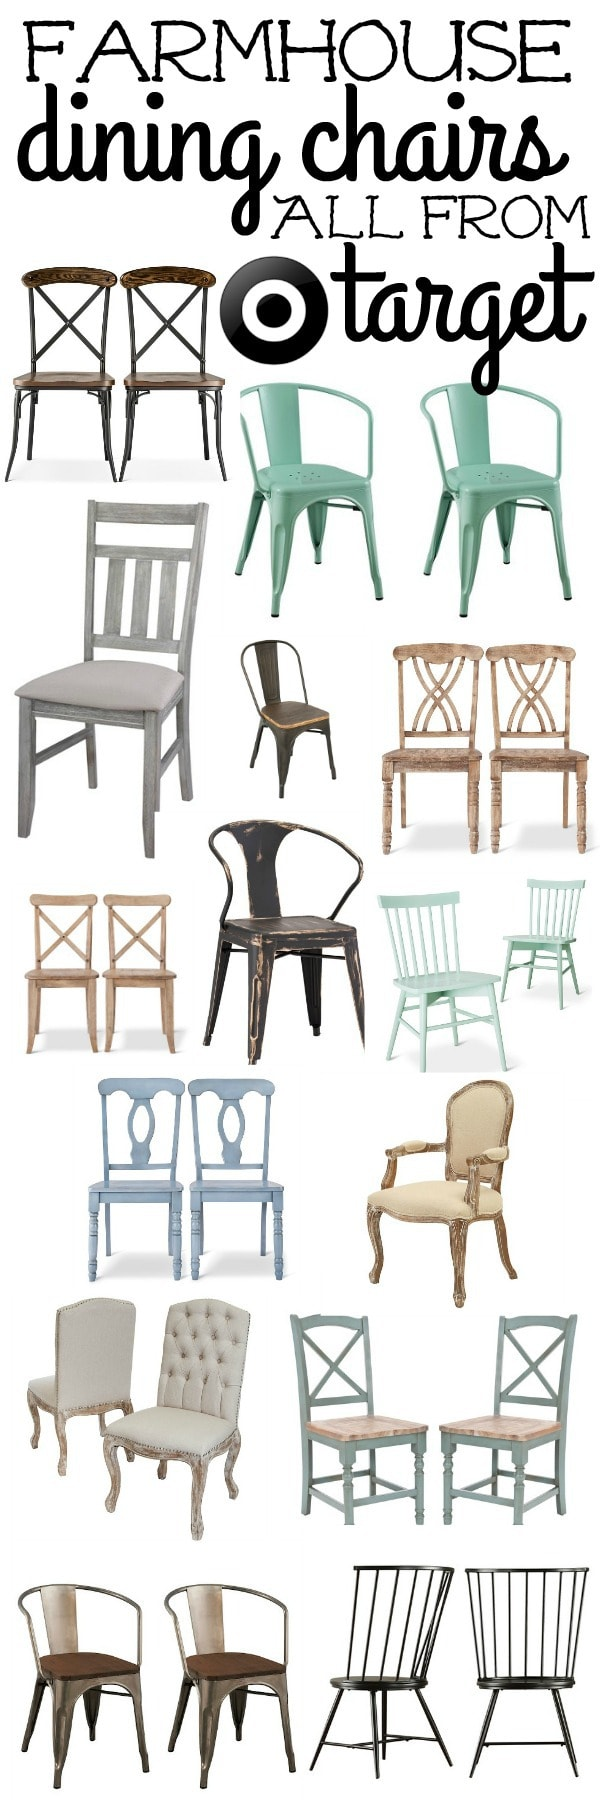 Farmhouse Dining Chairs